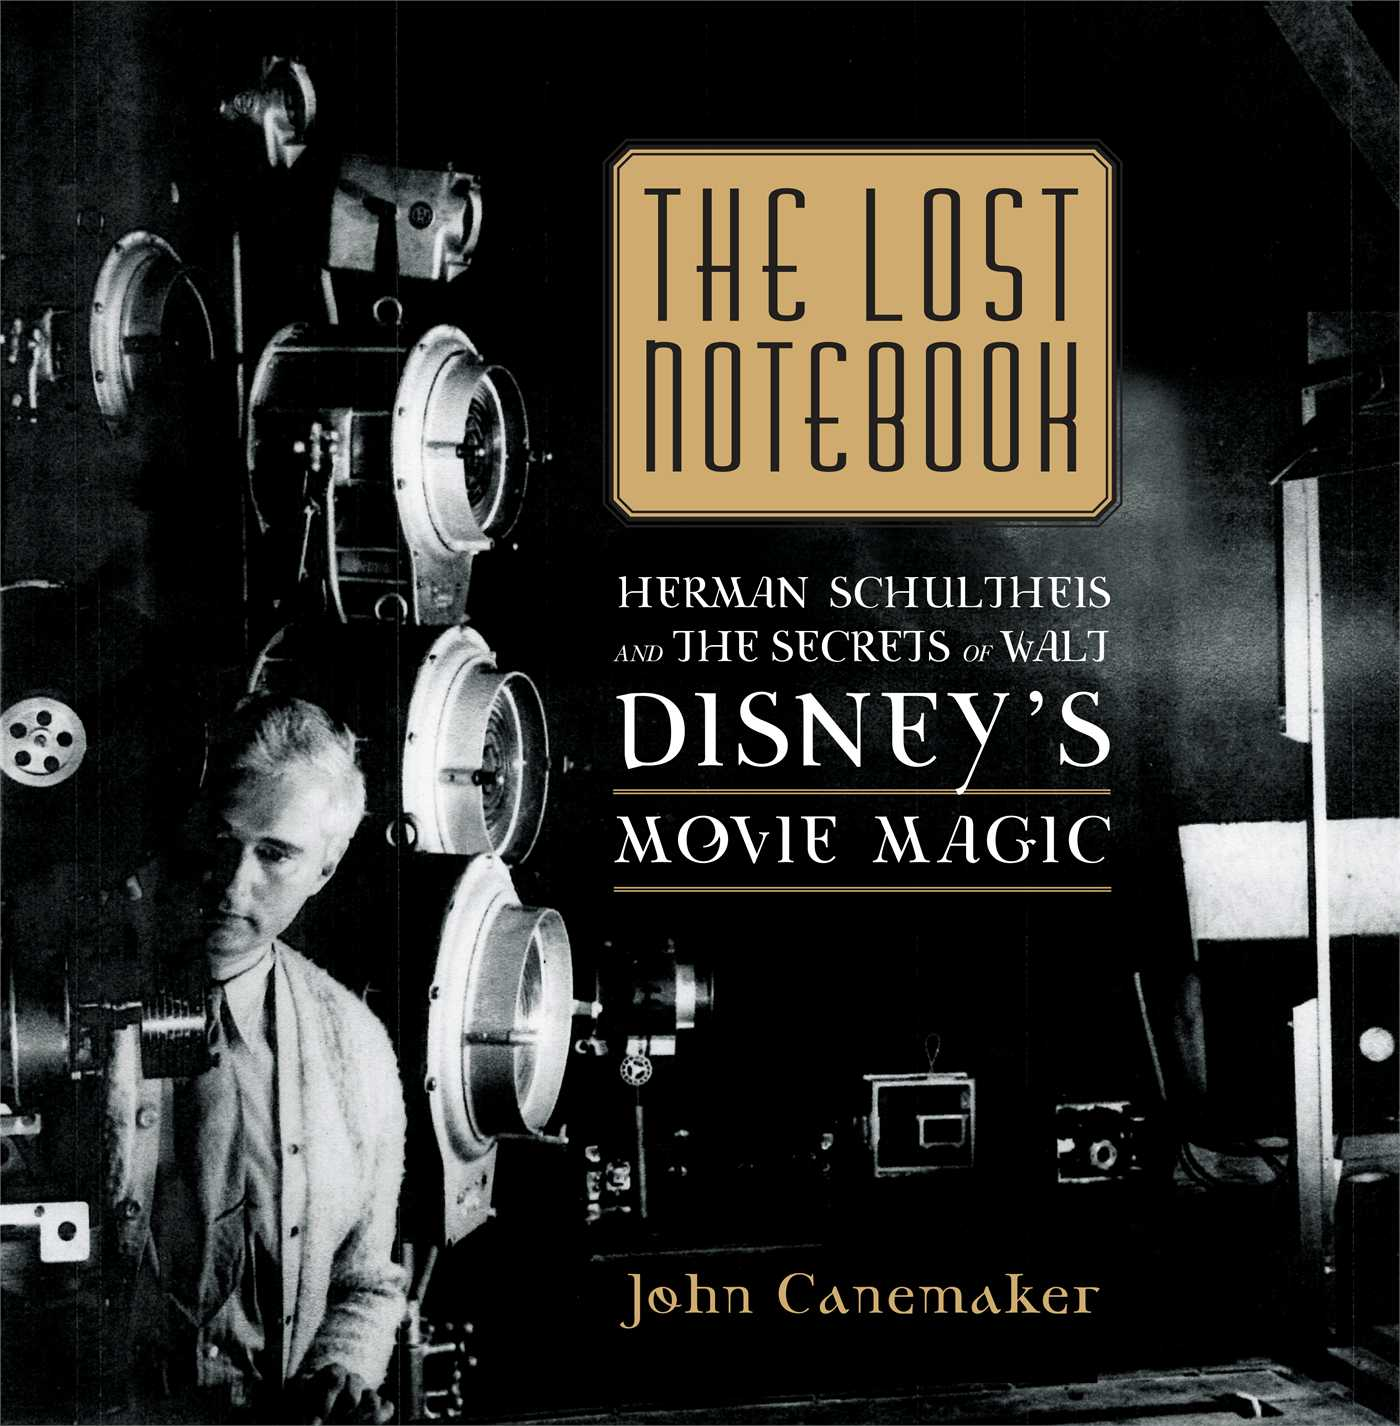 The Lost Notebook : Herman Schultheis & the Secrets of Walt Disney's Movie Magic